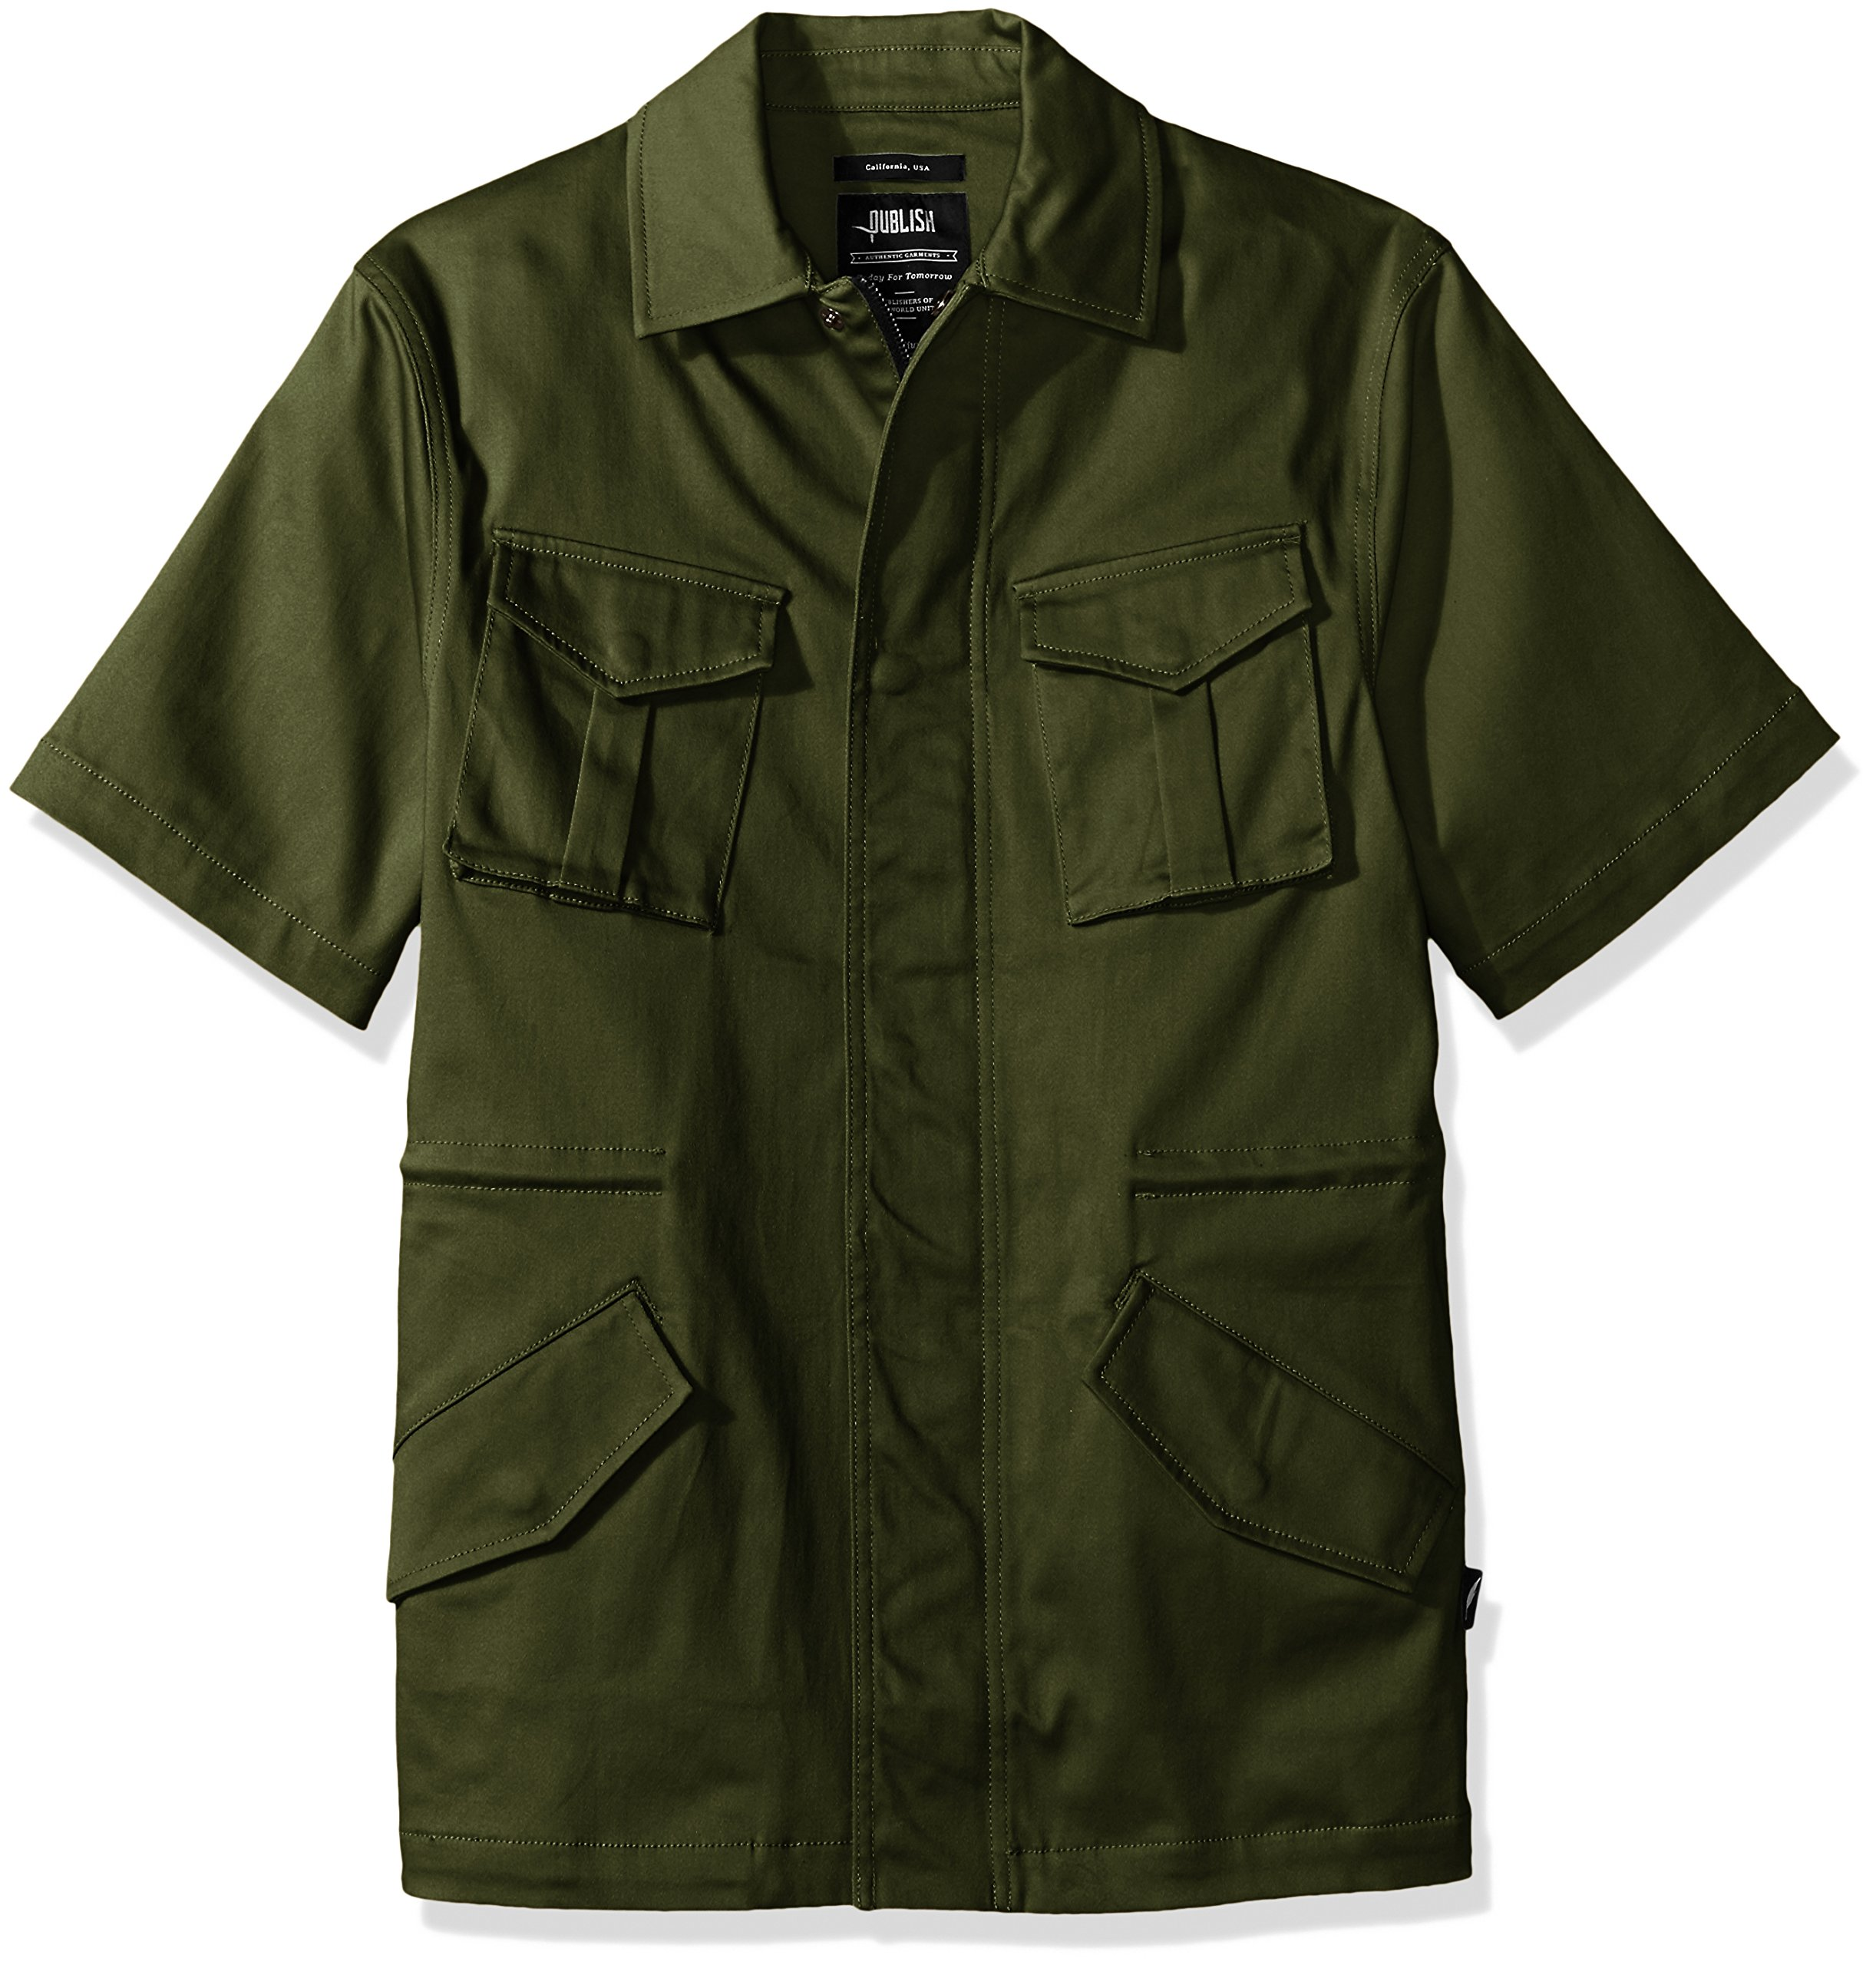 PUBLISH BRAND INC. Men's Kayden Button Down Utility Shirt, Olive, XXX-Large